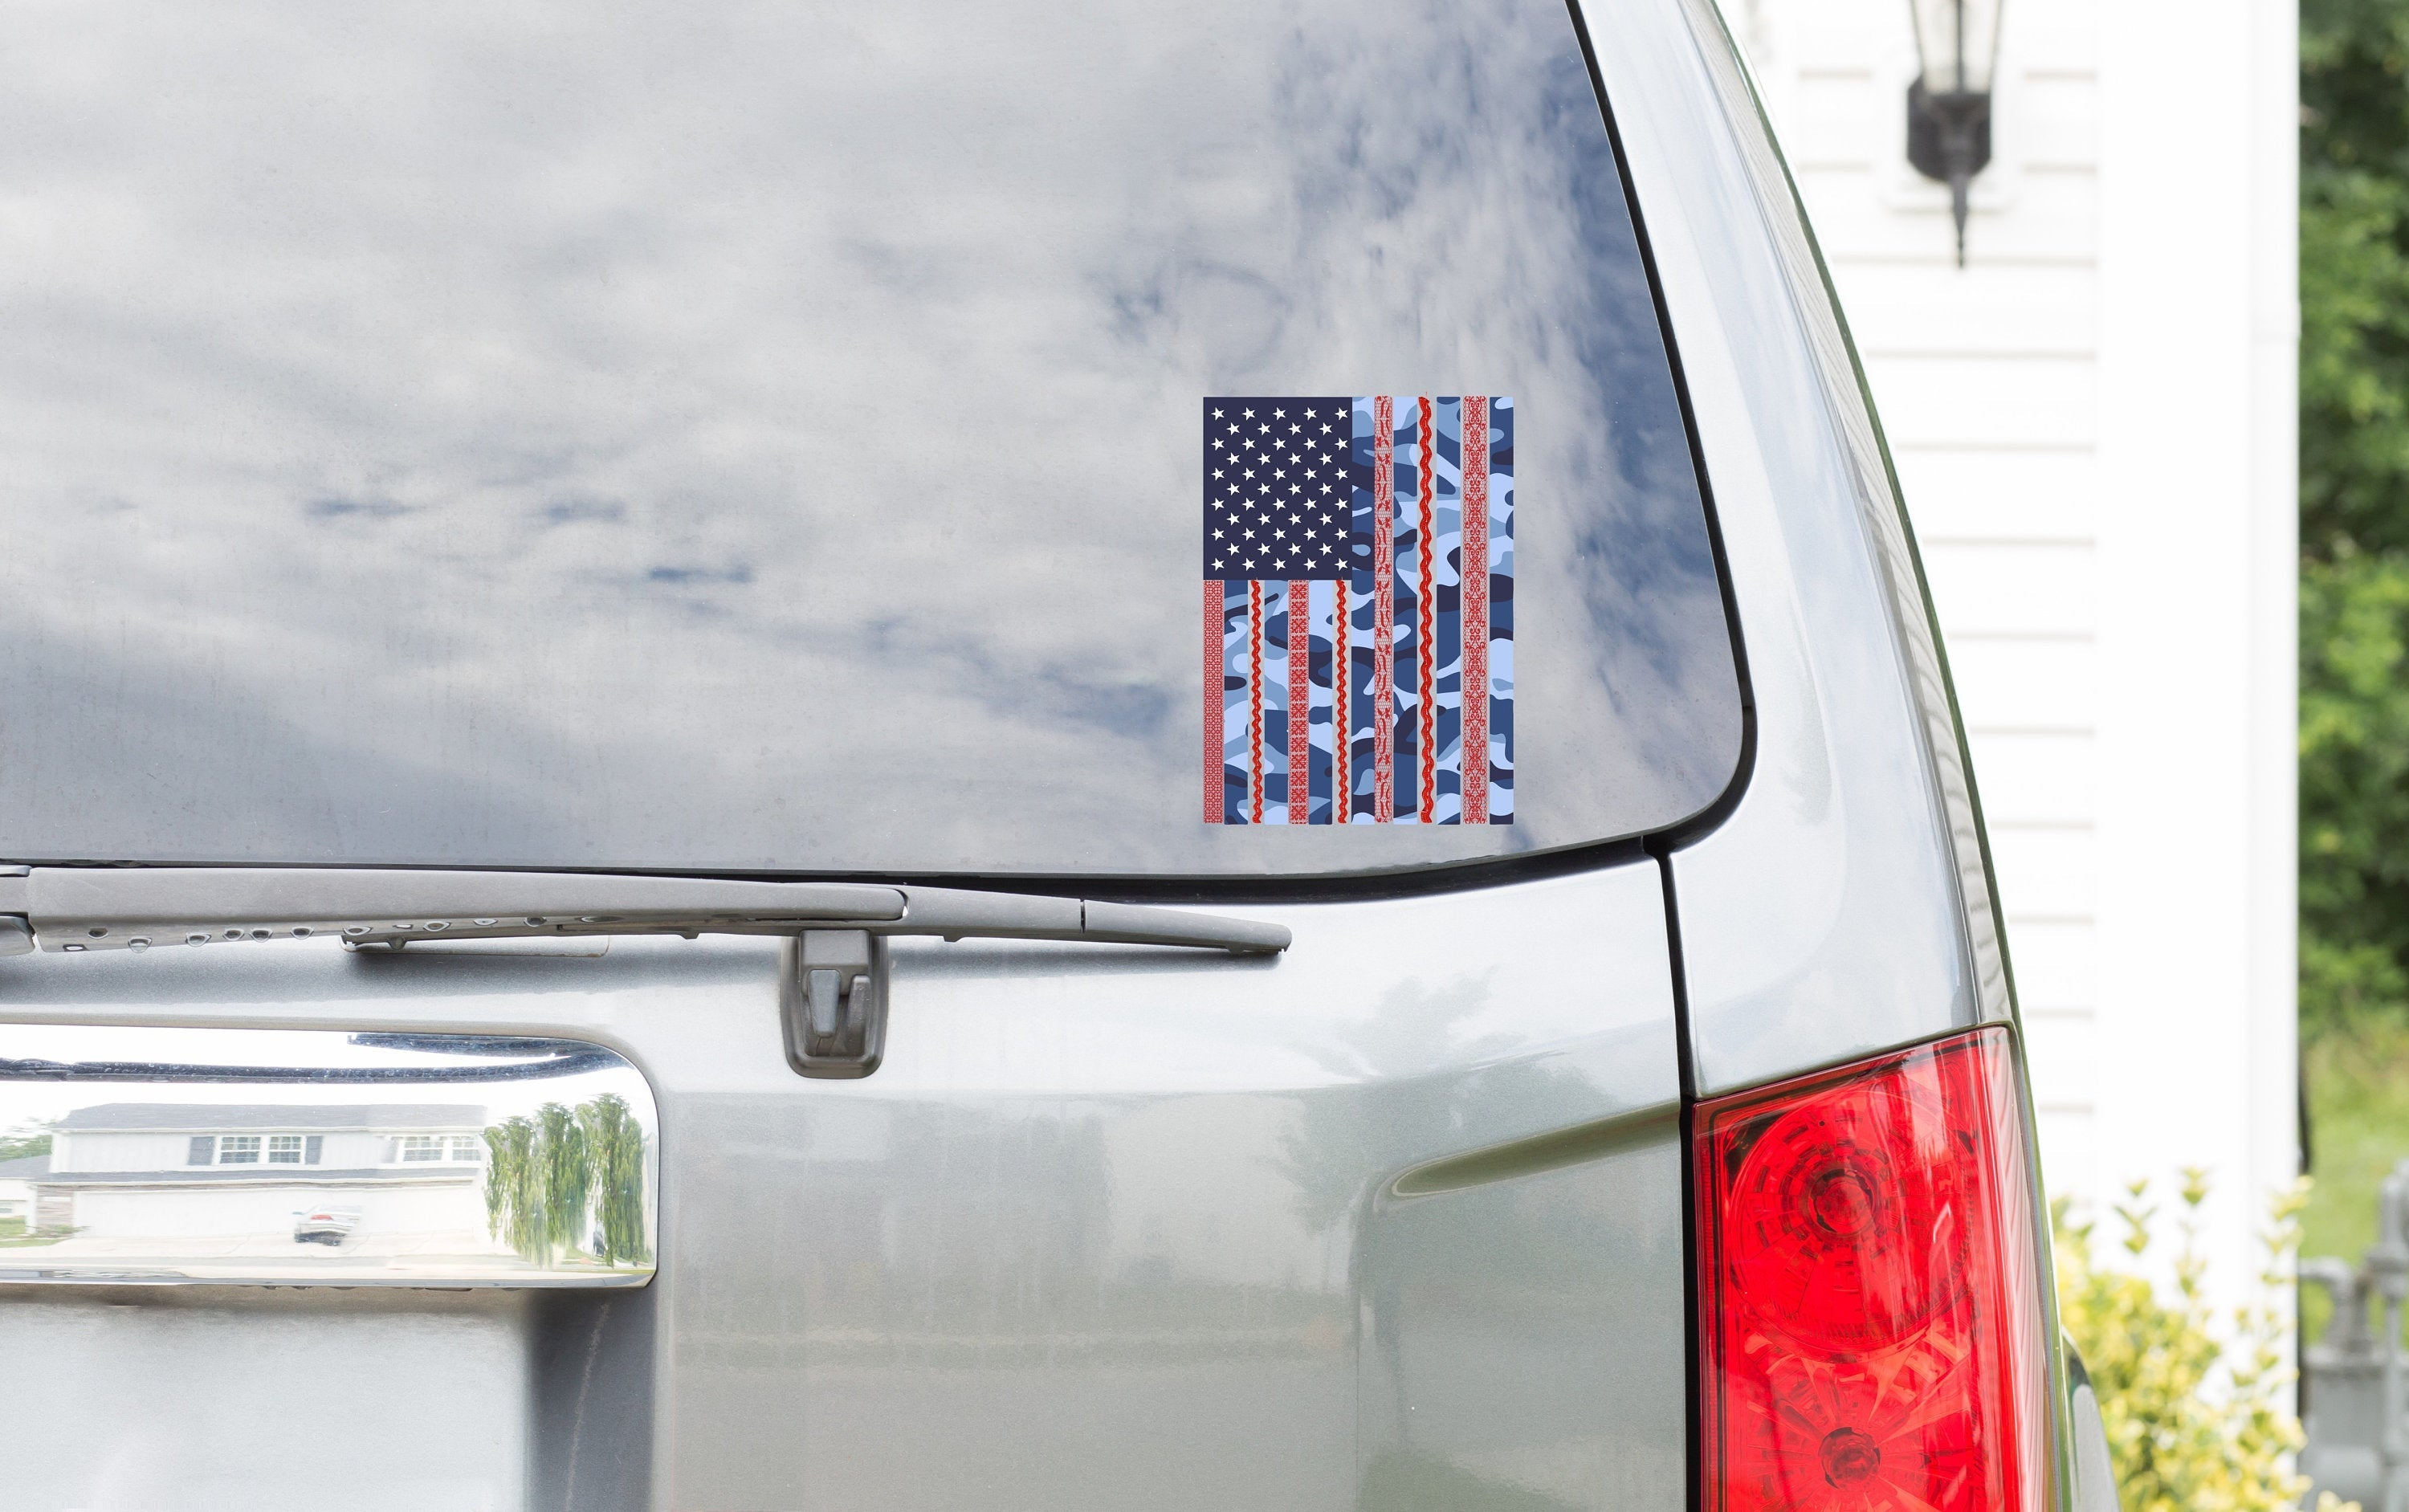 USA Flag Window Sticker Decal Custom Printed Outdoor Adhesive Vinyl